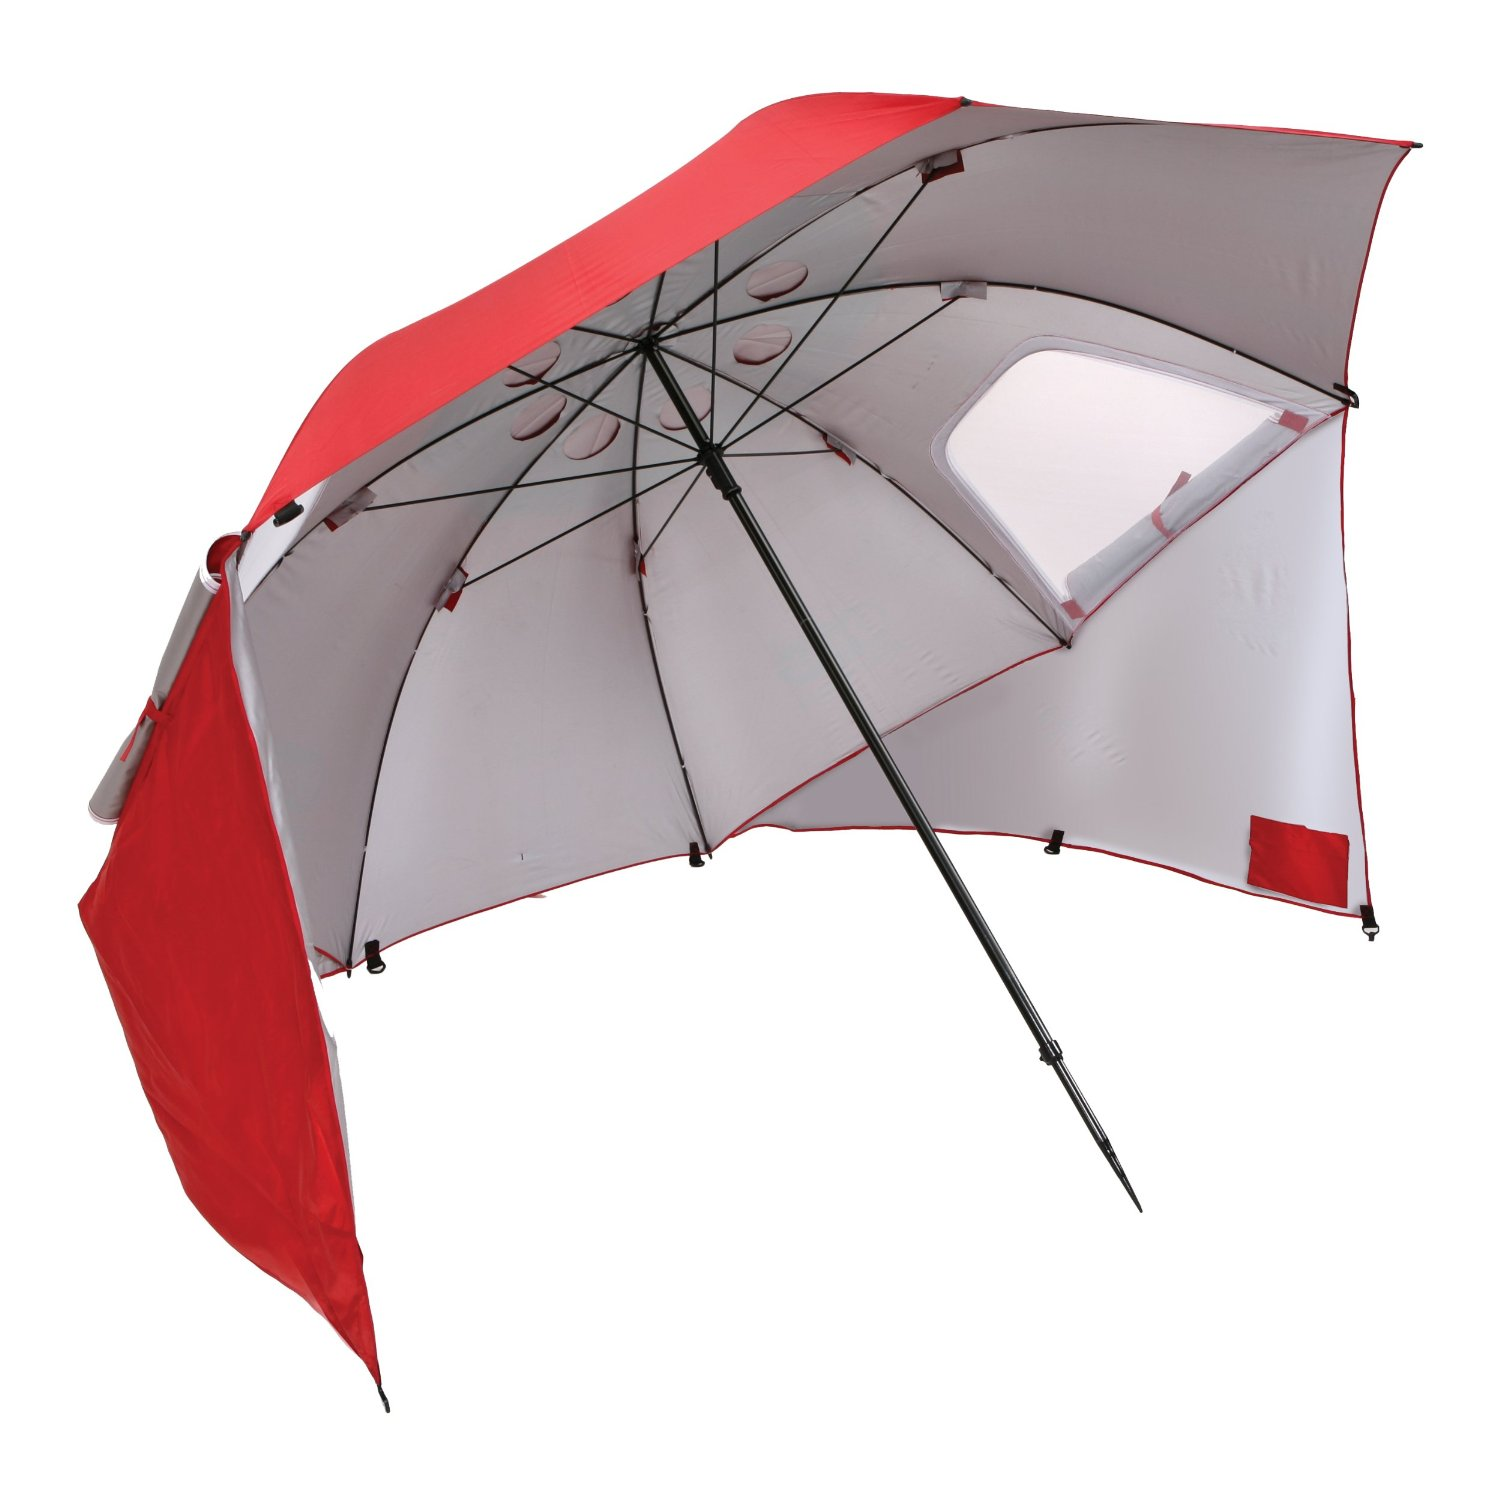 15 Cool Umbrellas and Stylish Umbrella Designs